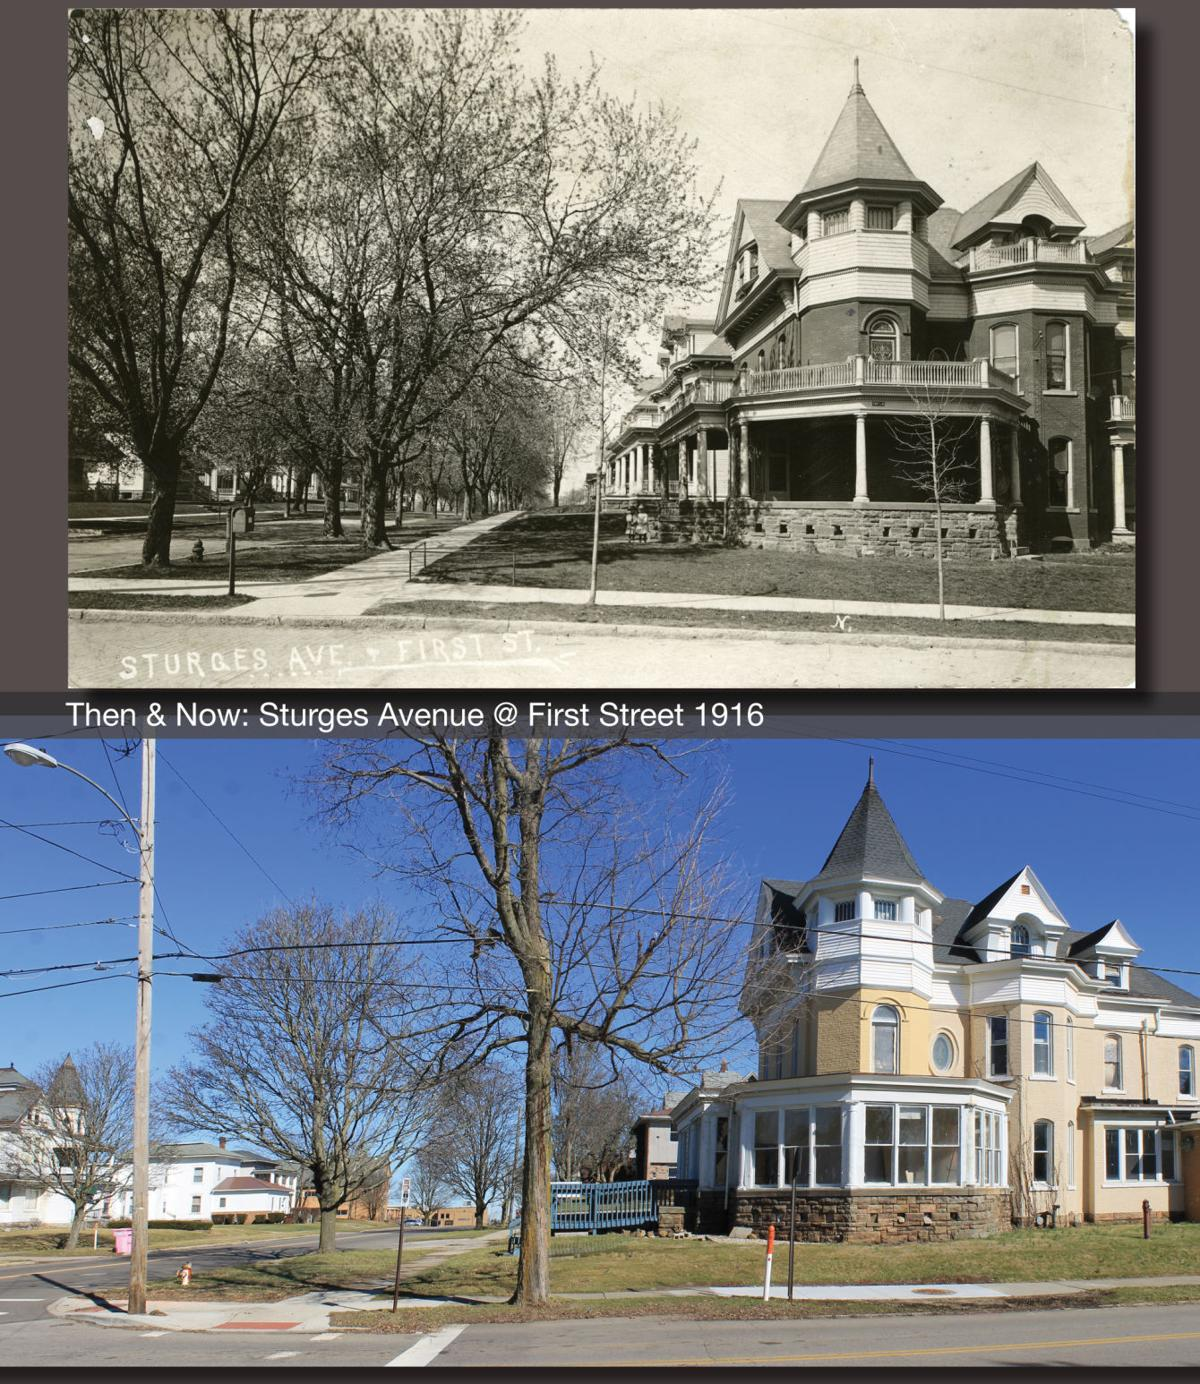 Then & Now: Sturges Avenue @ First Street 1916